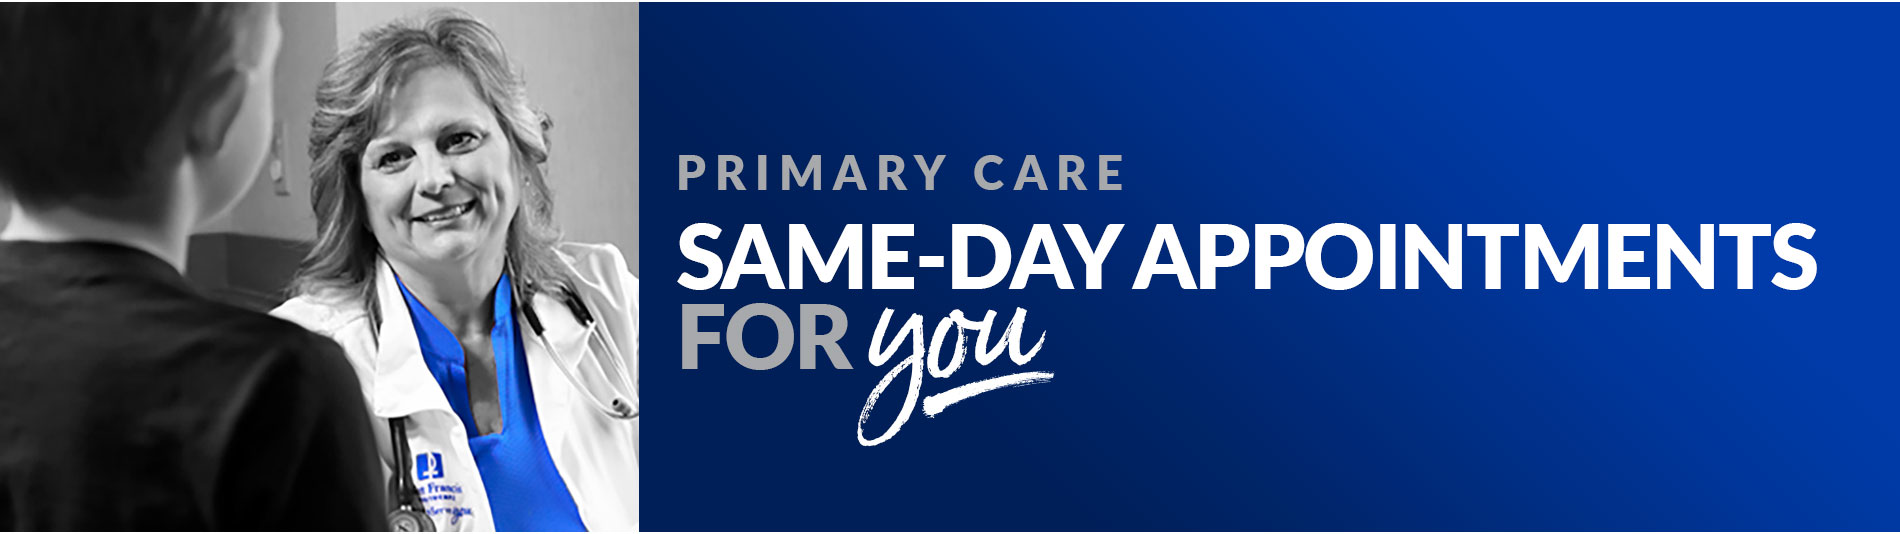 Primary care same day appointments for YOU!